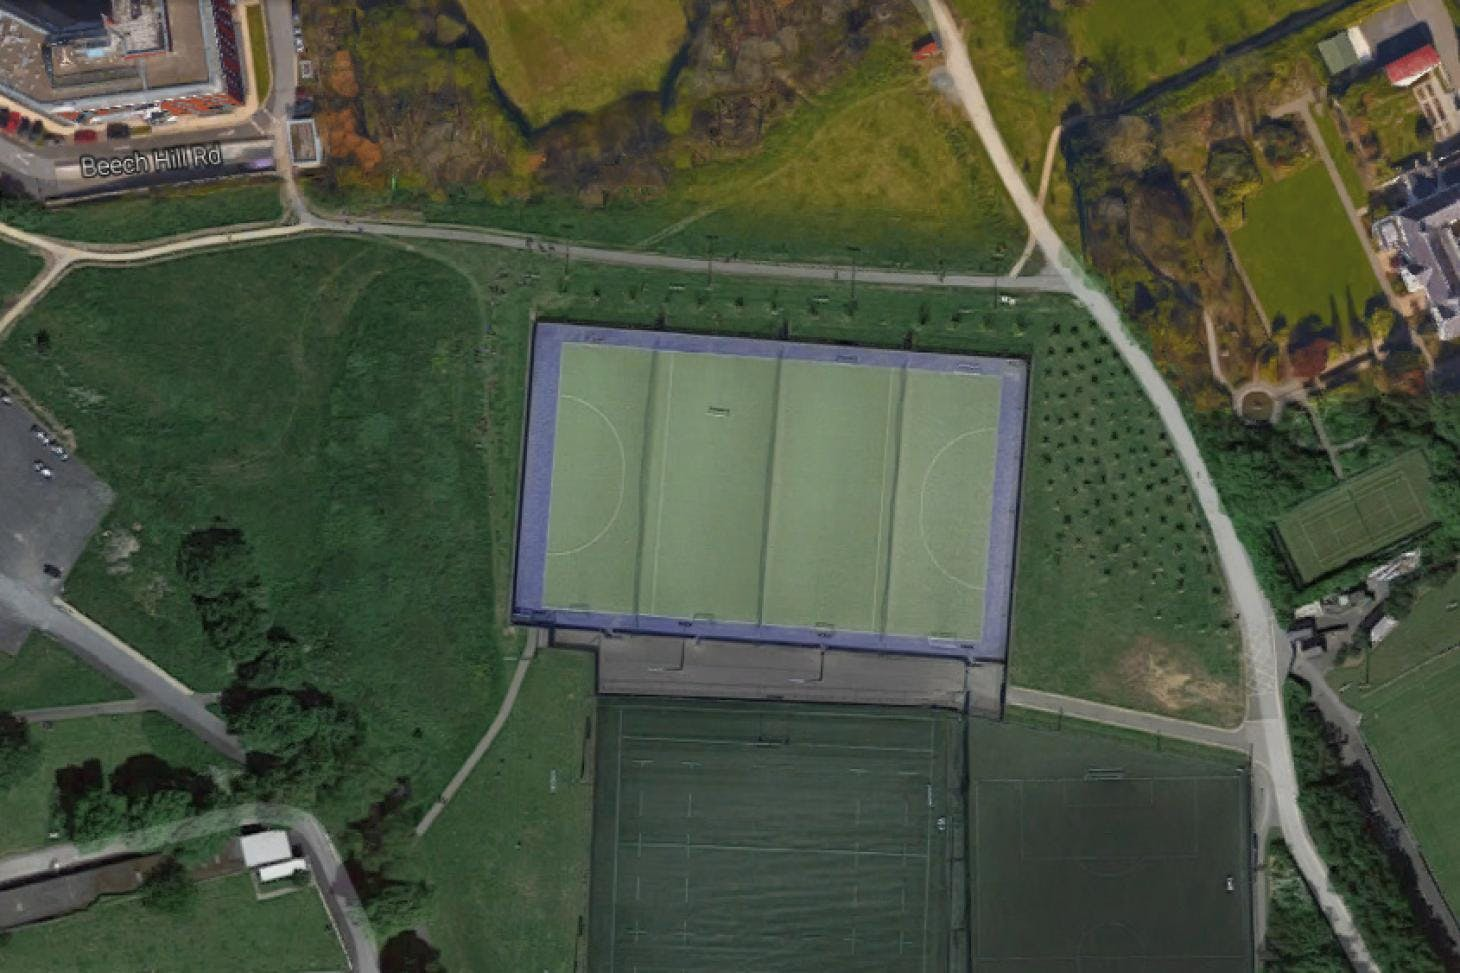 University College Dublin Outdoor | Astroturf hockey pitch